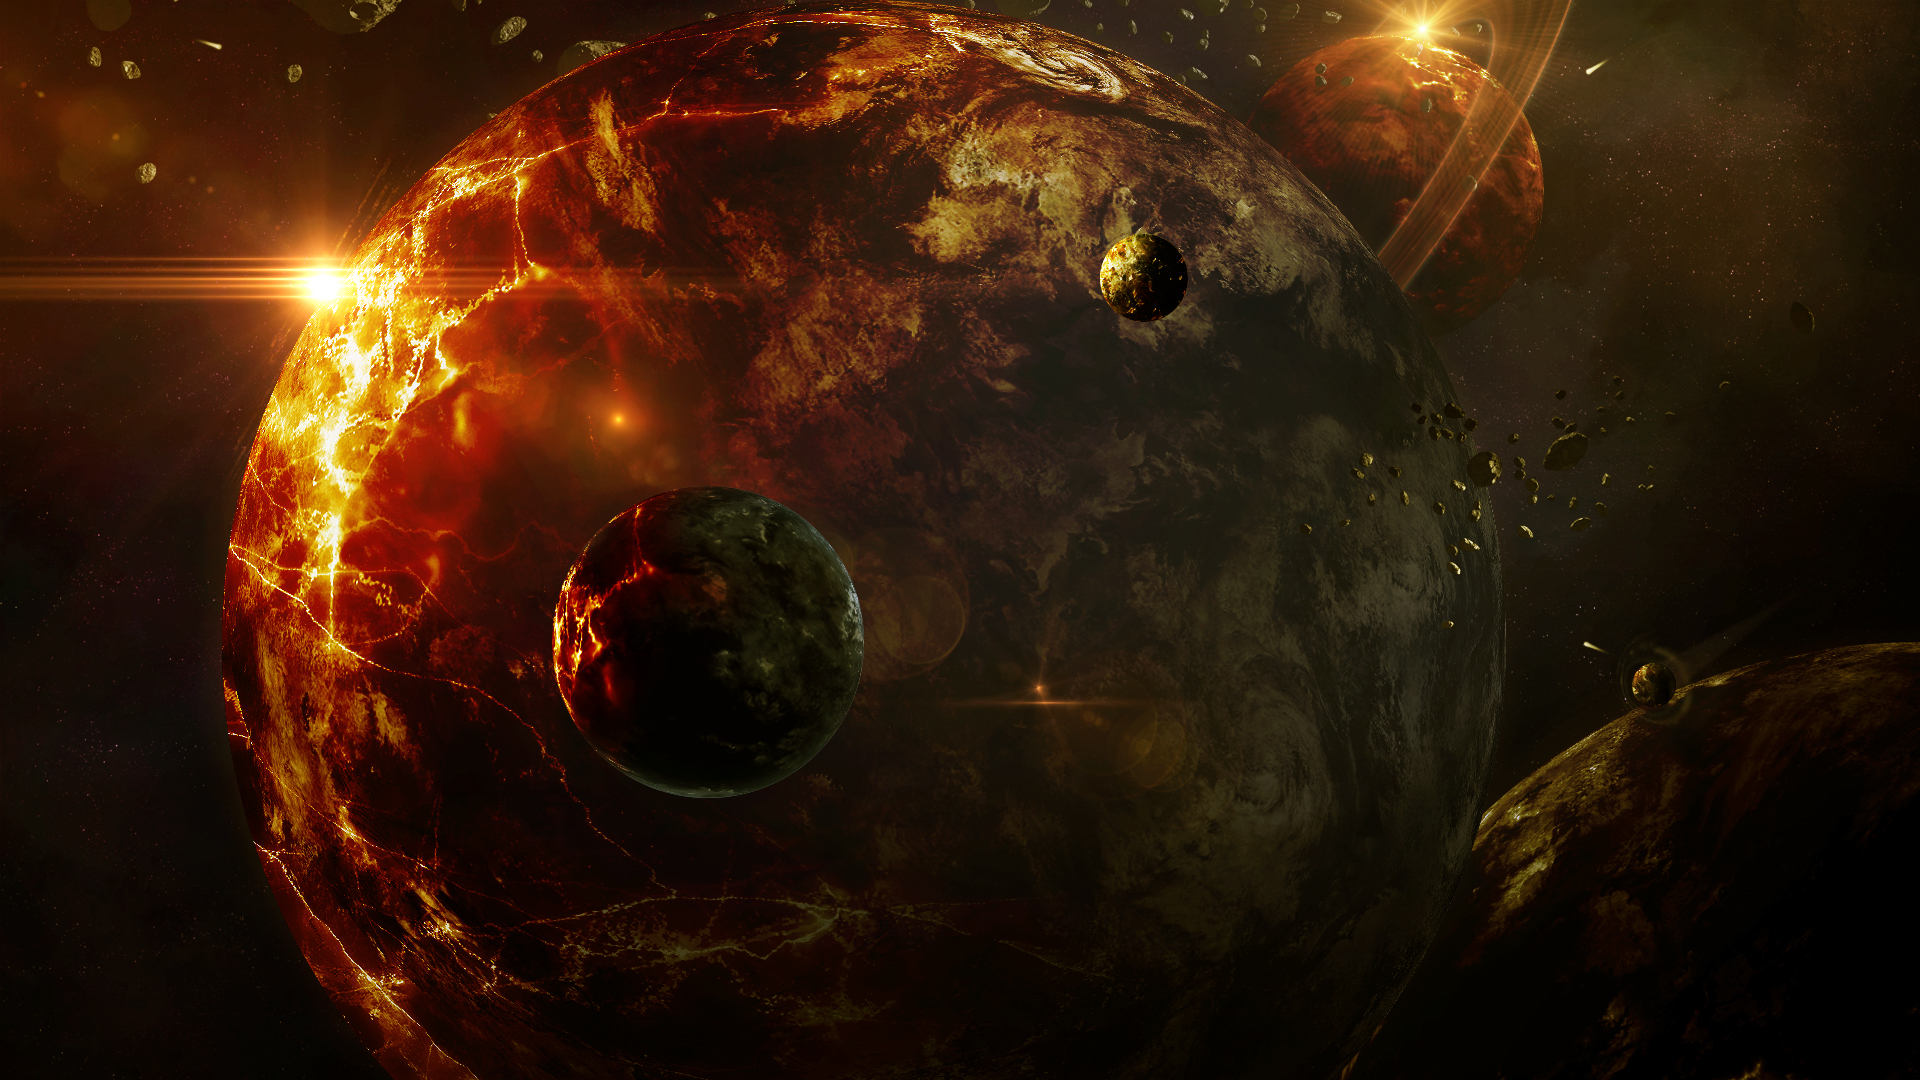 41941 download wallpaper Fantasy, Planets screensavers and pictures for free